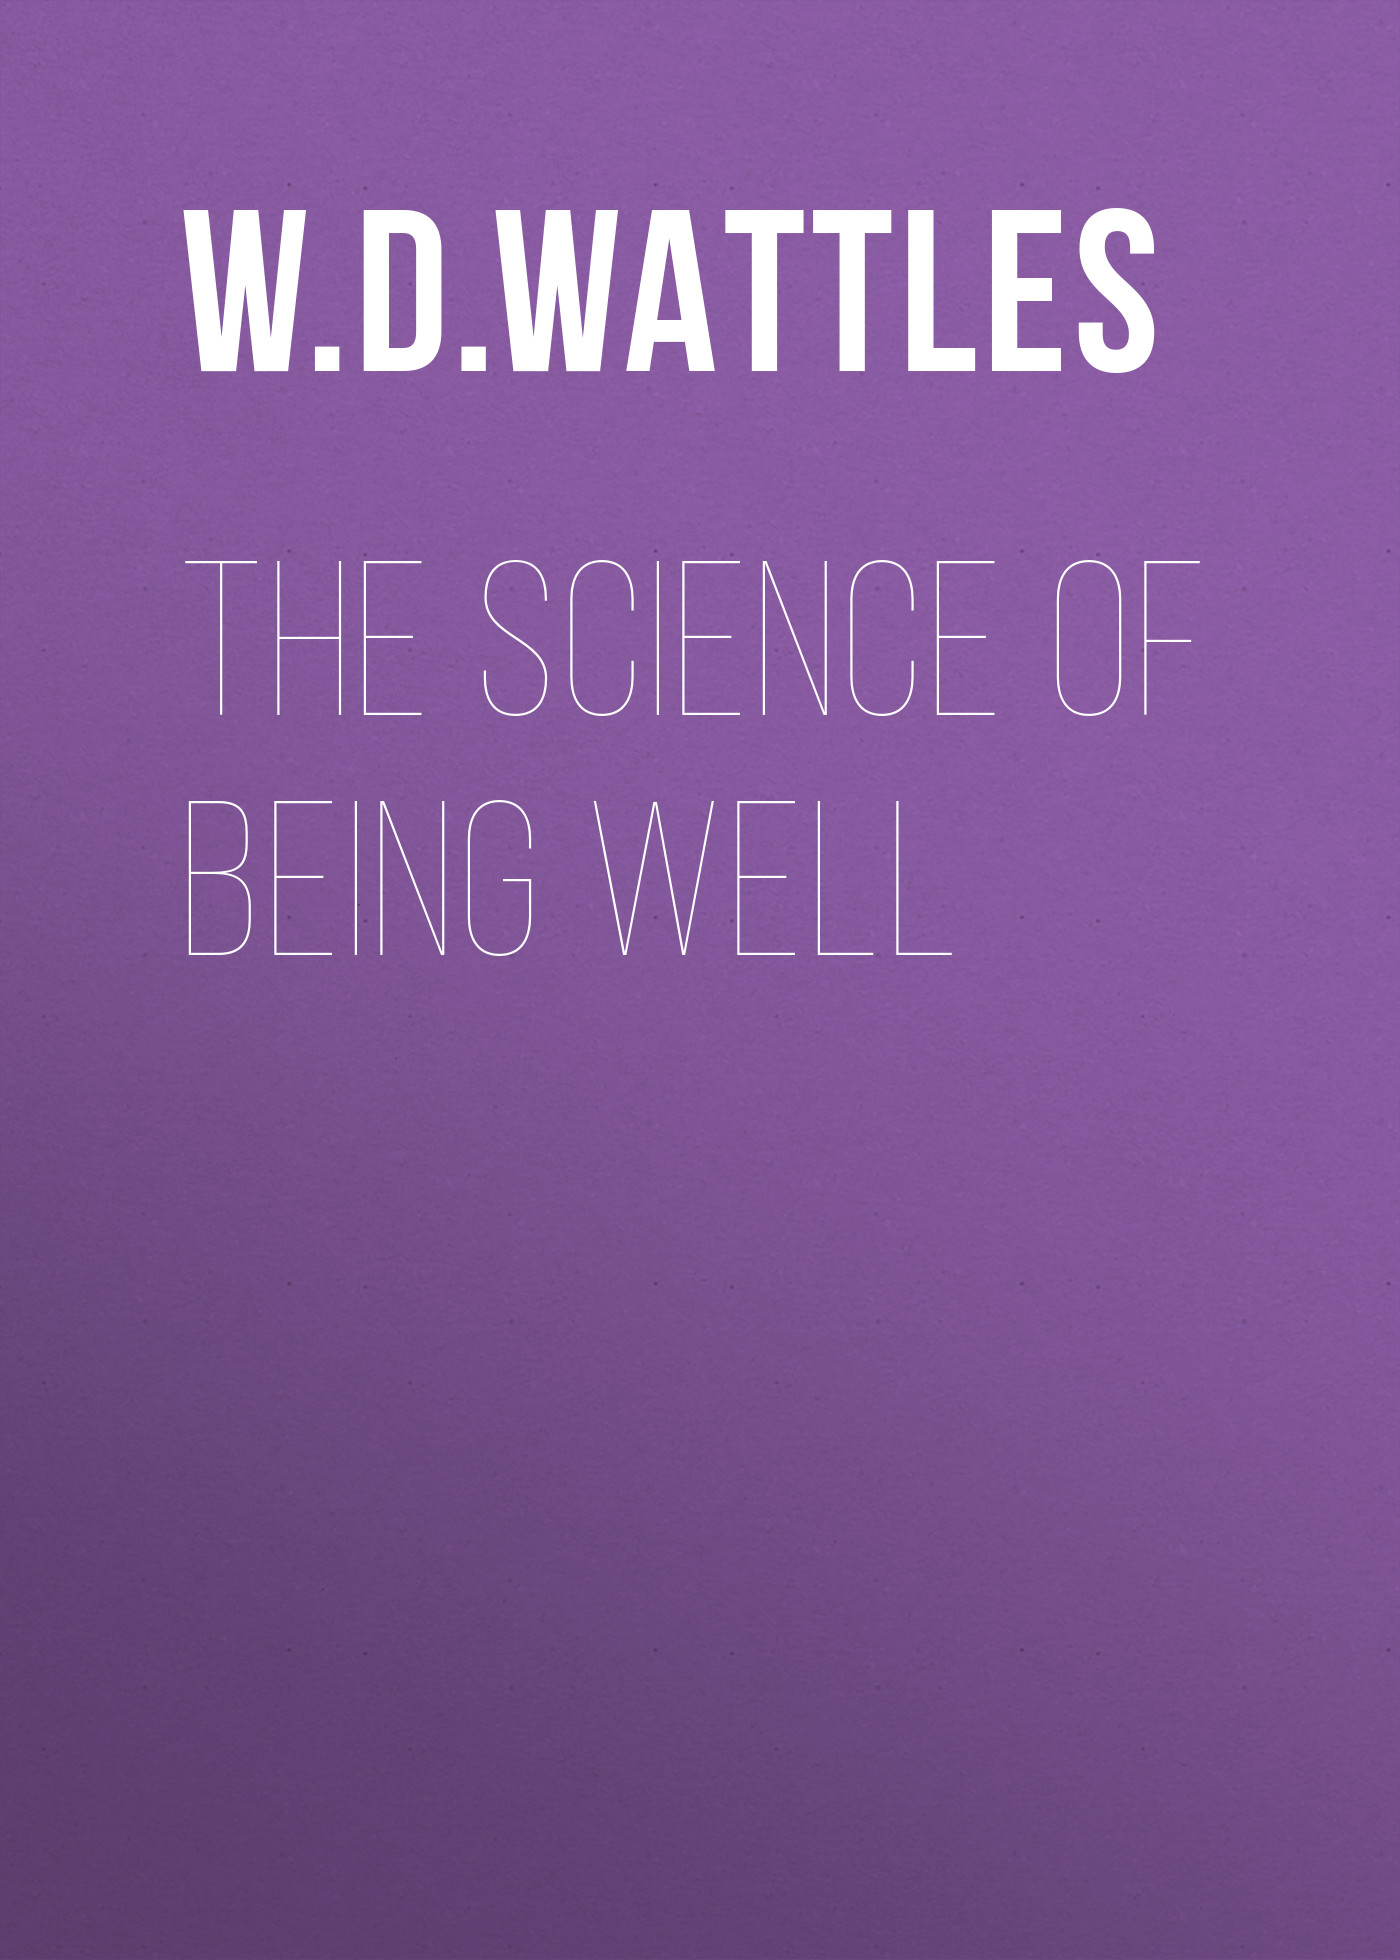 W. D. Wattles The Science of Being Well hospitals for patient s healing and well being